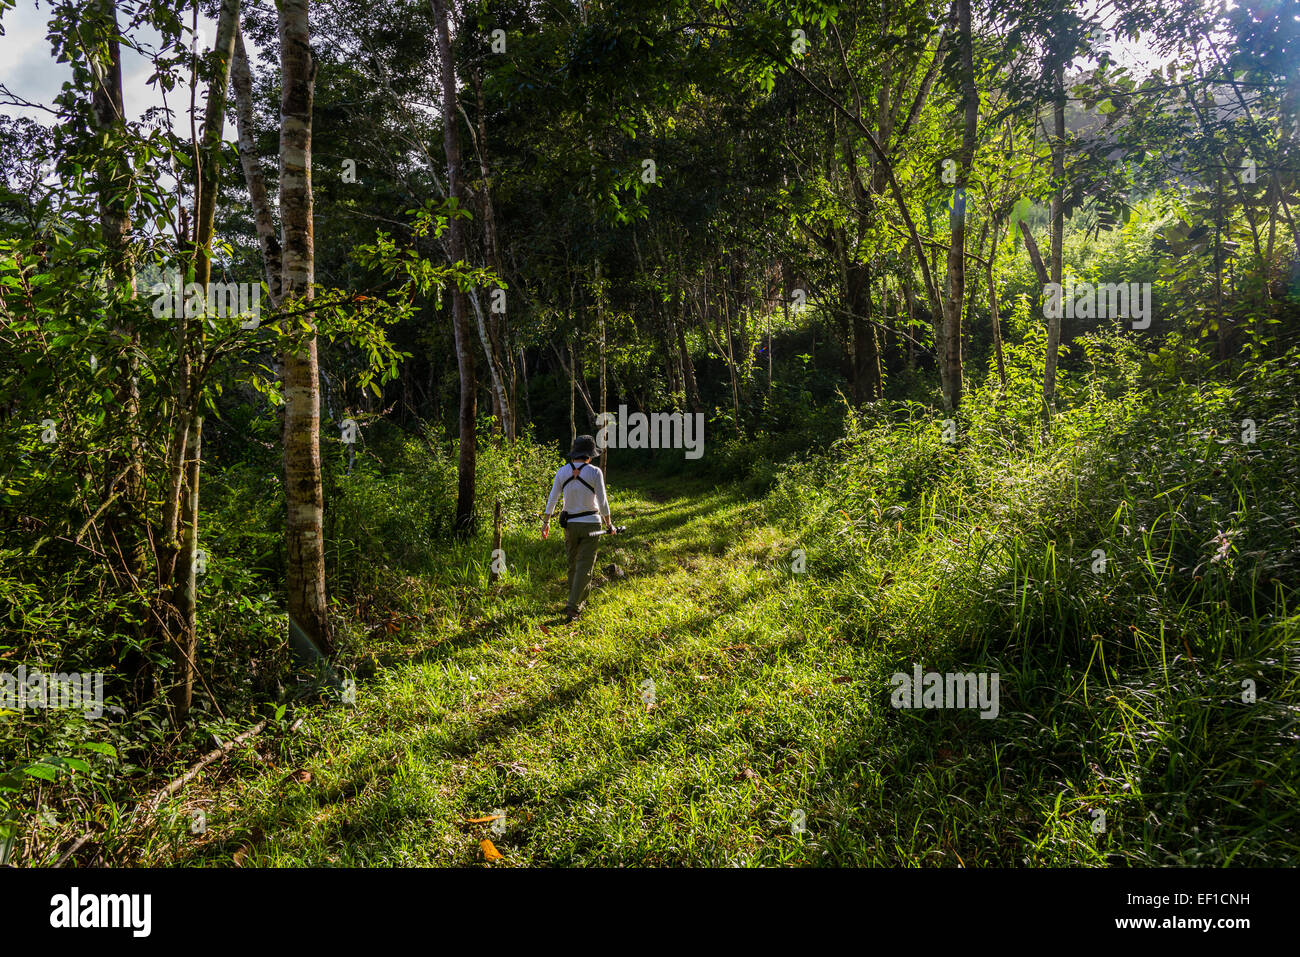 A female hiker walking on trail through lush green jungles of Belize, Central America. - Stock Image